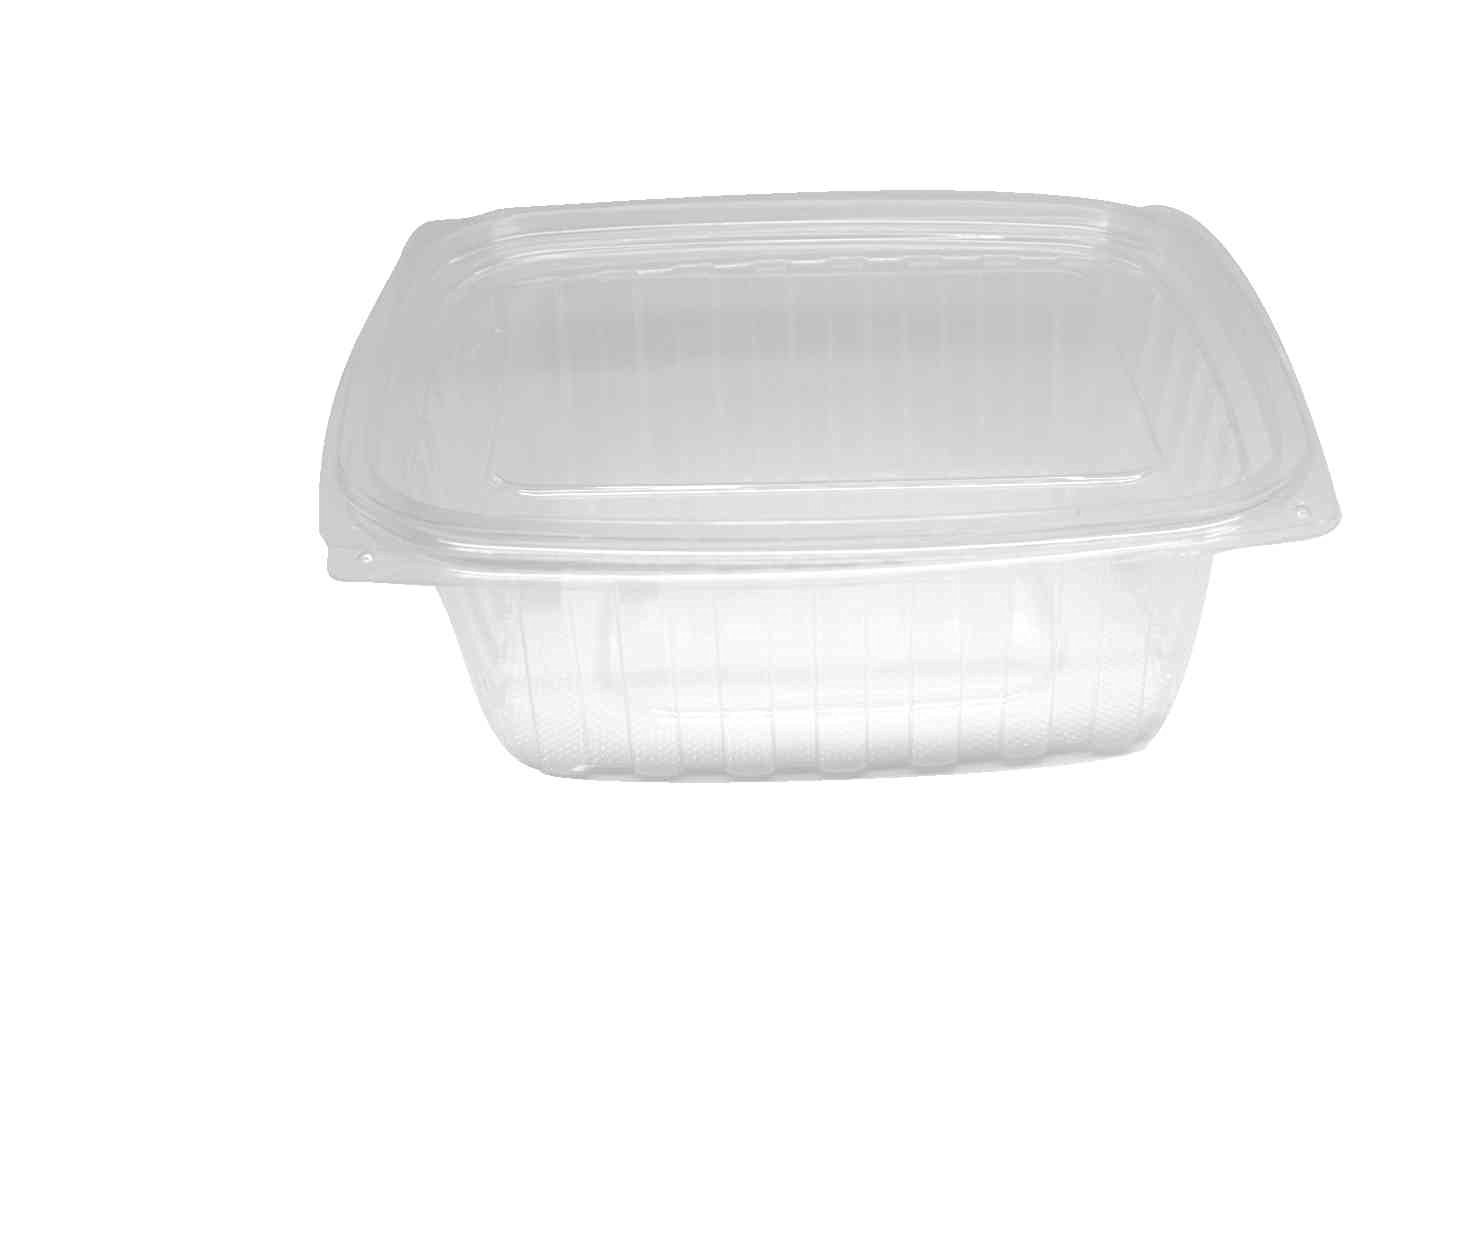 """Choice-Pac L1D-2064 Polyethylene Terephthalate Rectangular 2-Piece Cold Deli Container, 9"""" Length x 7-3/8"""" Width x 3-1/4"""" Height, Clear, Extra-Large, 64-Ounce (Case of 200)"""